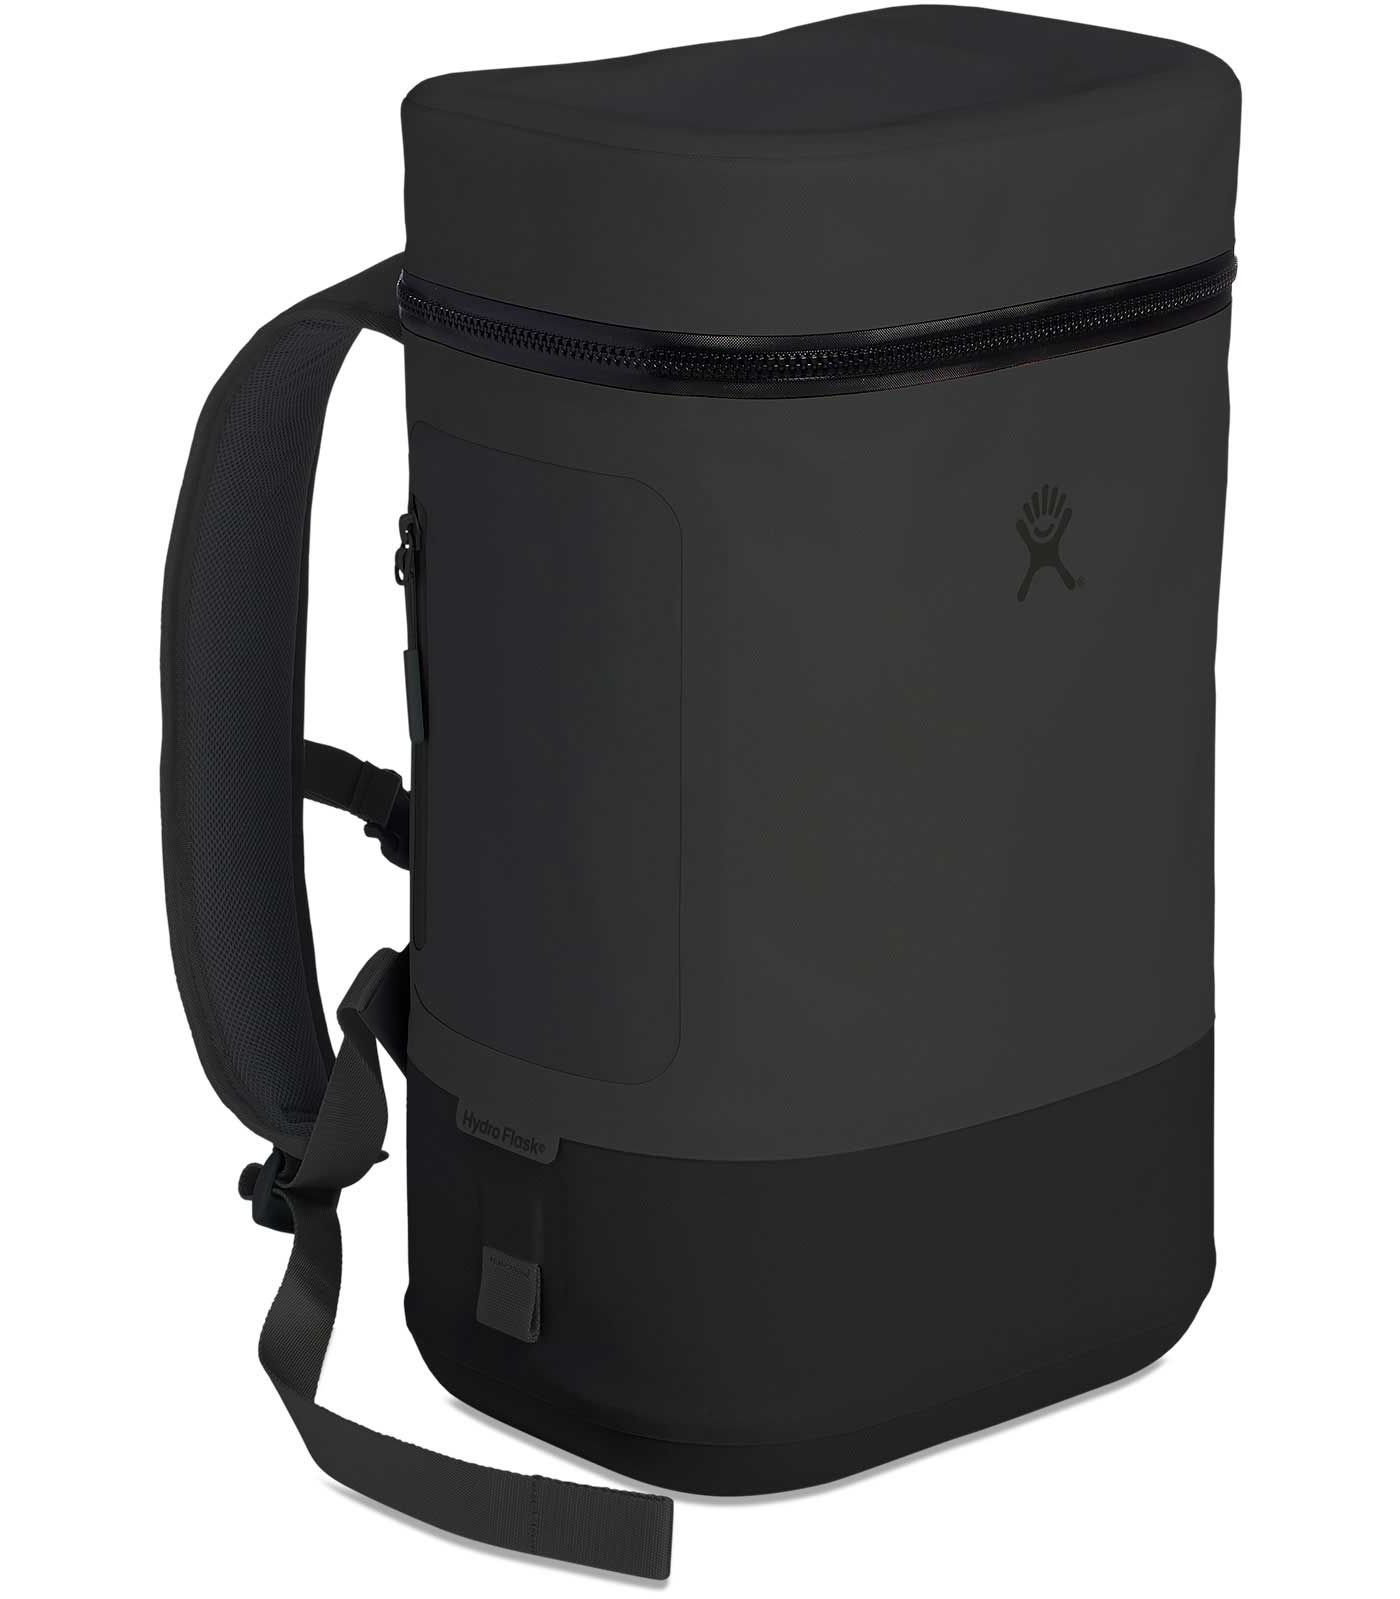 Hydro Flask Unbound Series 15L Soft Cooler Pack